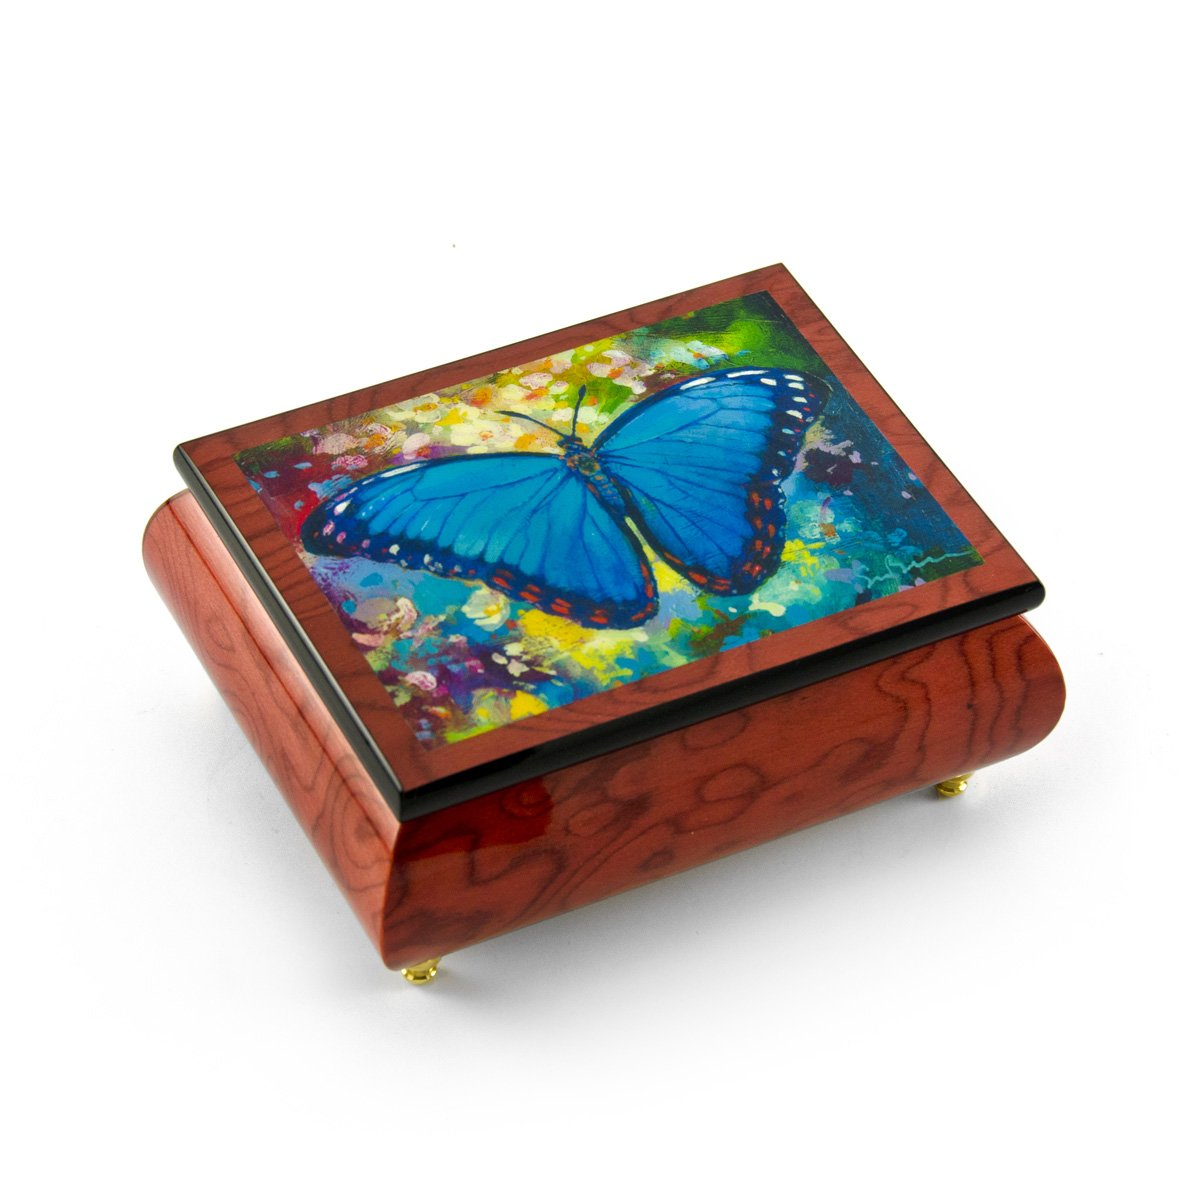 Gorgeous Handcrafted Red-Wine Butterfly Music Box by Ercolano - ''Blue Morpho'' Simon Bull - Psalm 23 (King of My Love)